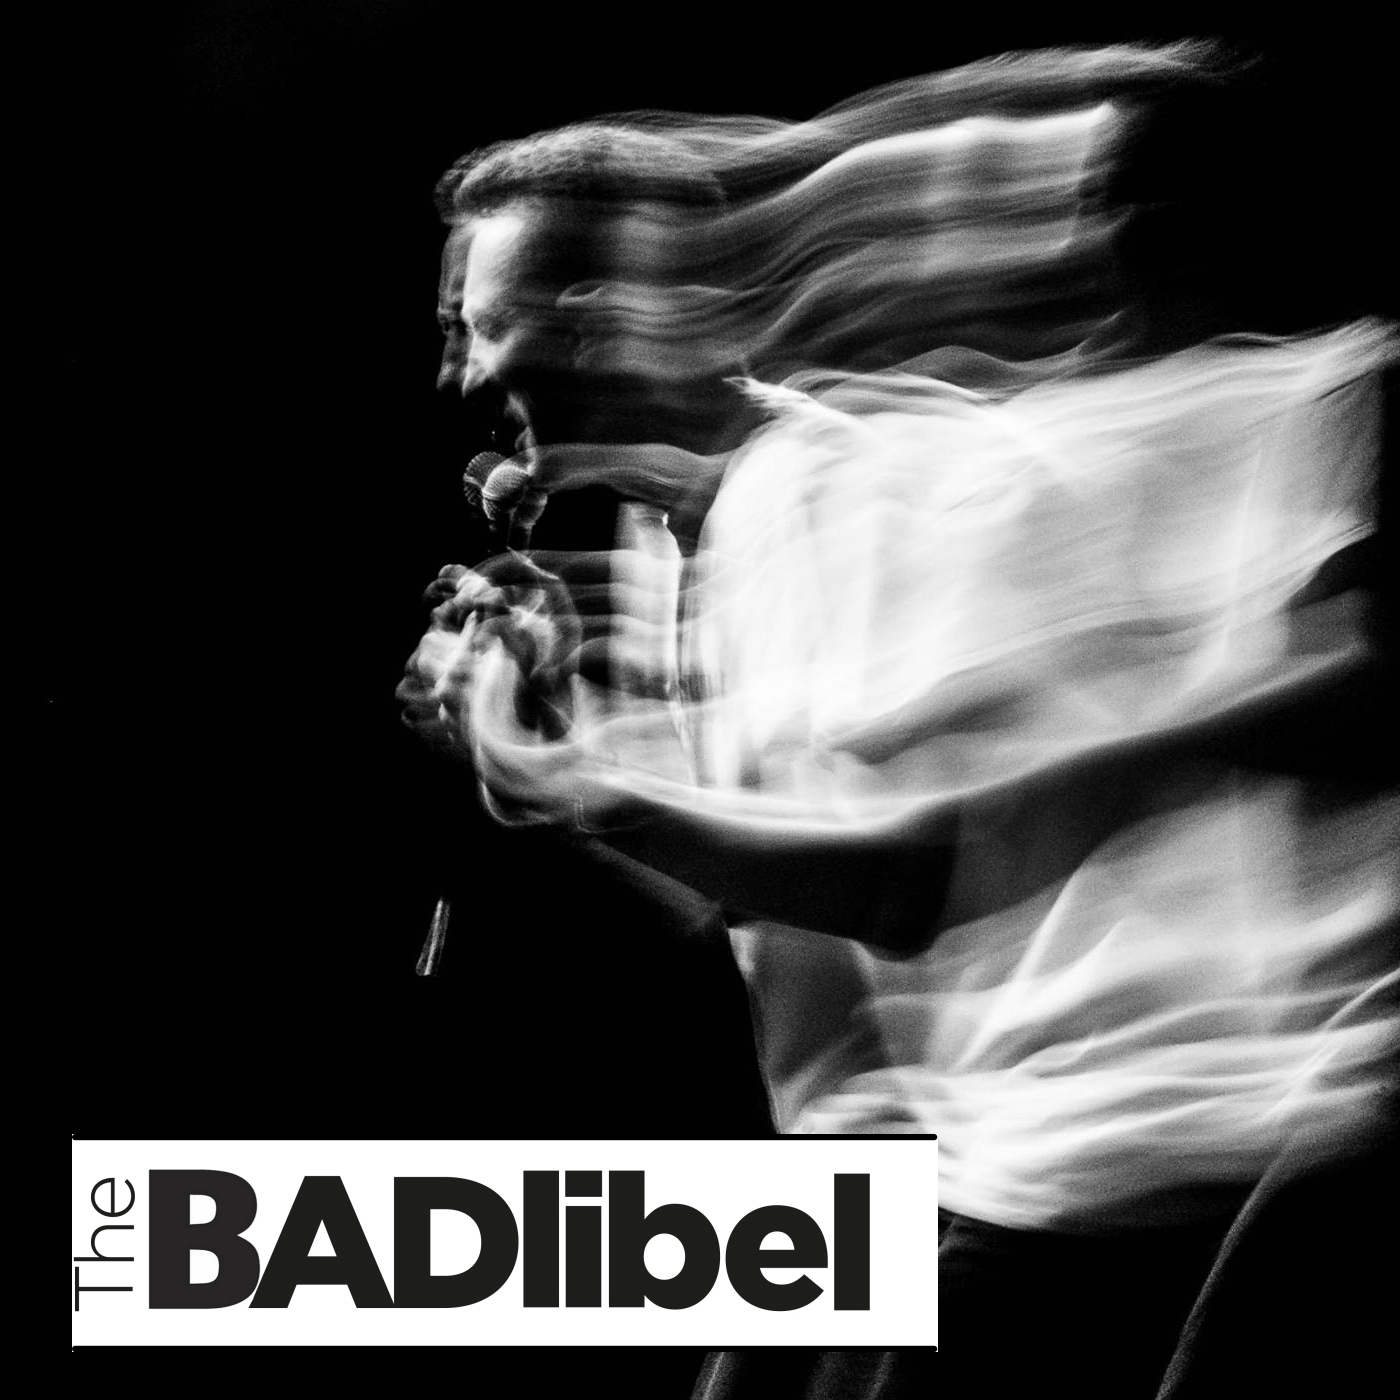 The Bad Libel - episode 4 - We did it on 11th August 2016